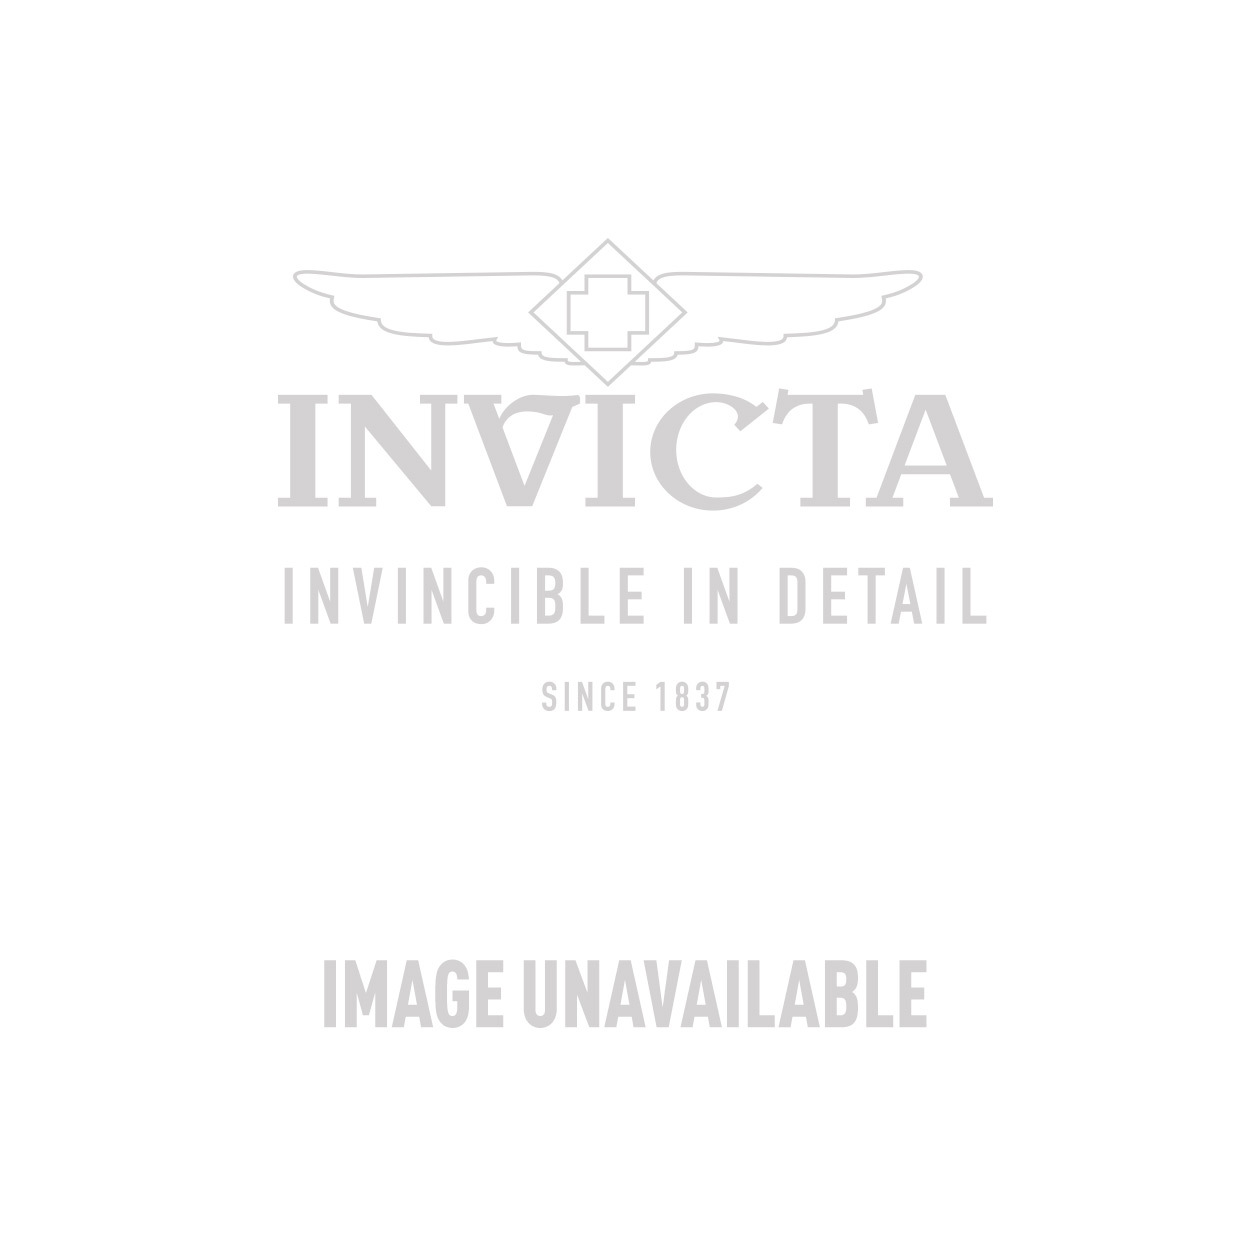 Invicta Wildflower Swiss Movement Quartz Watch - Stainless Steel case Stainless Steel band - Model 17061